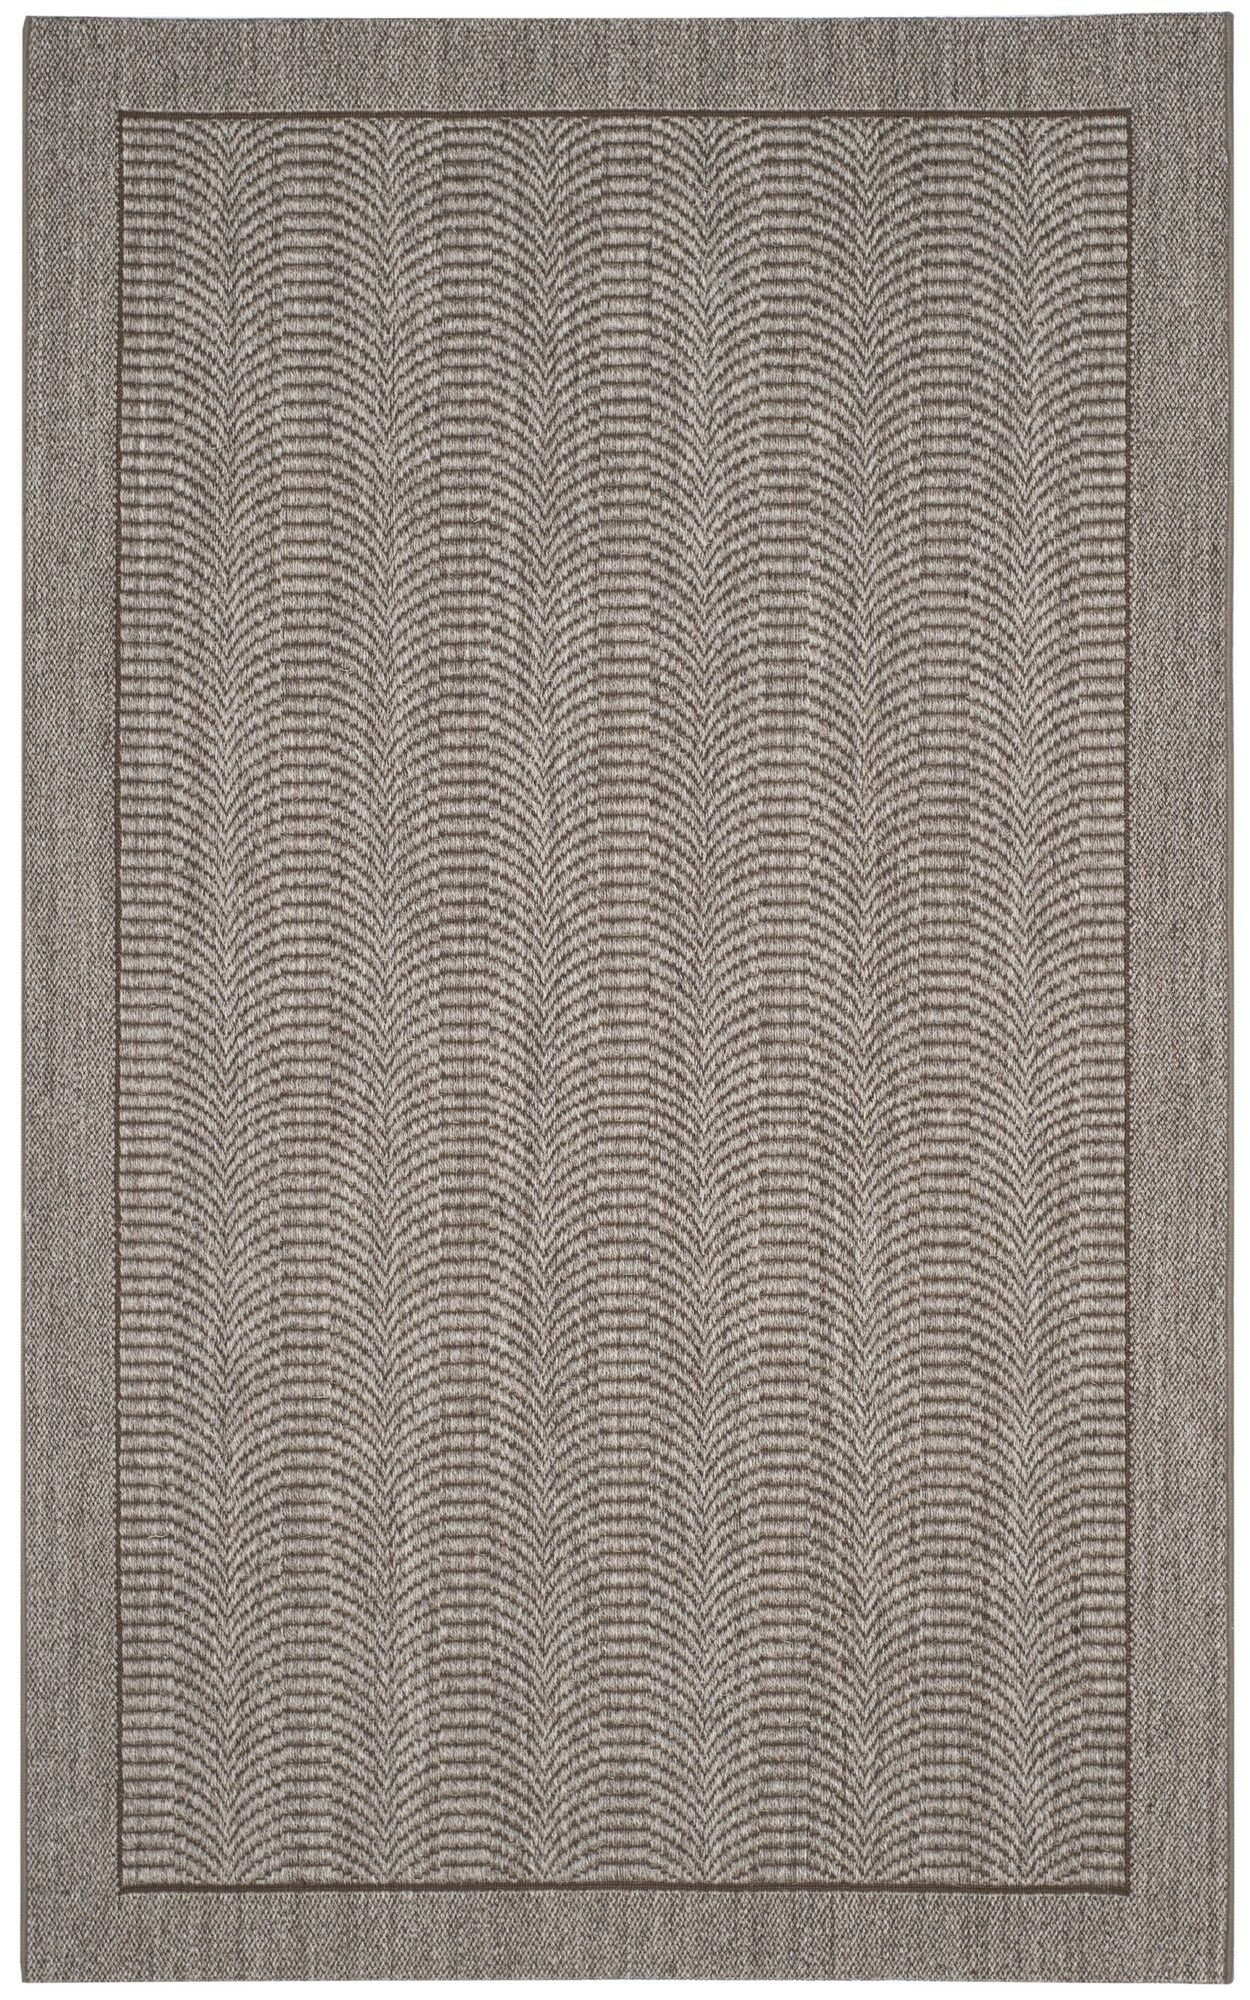 Fiske Solid Sisal Silver Area Rug Rug Size: Rectangle 8' x 10'